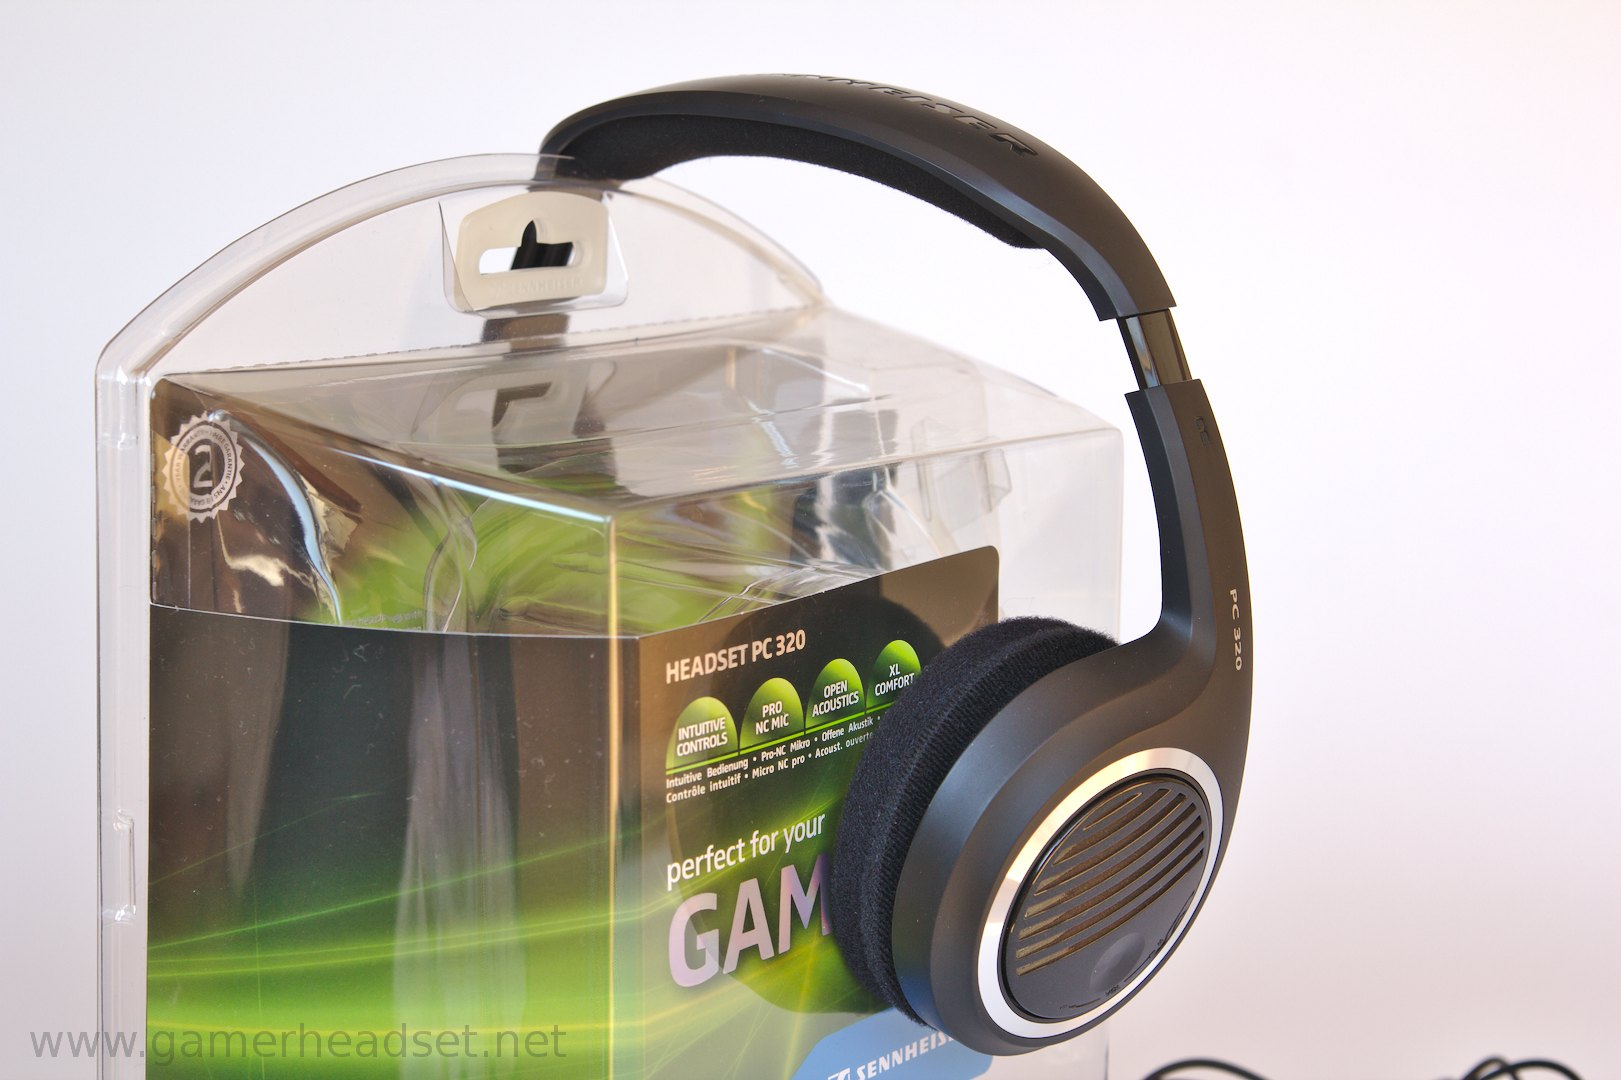 sennheiser pc 320 im test gamer headset. Black Bedroom Furniture Sets. Home Design Ideas